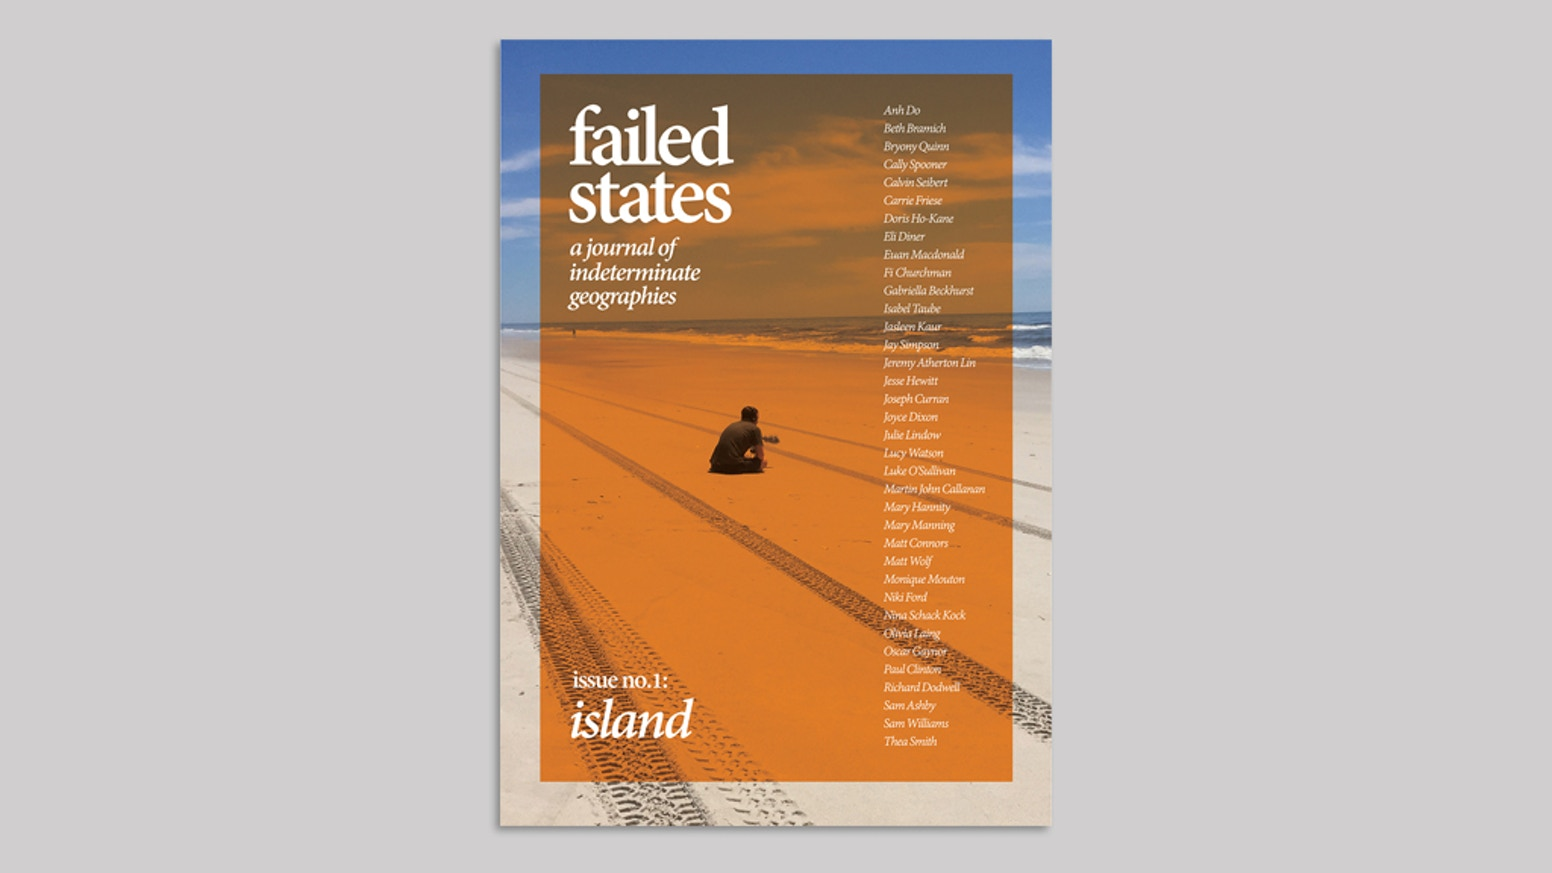 failed states Although the 10 worst failed states don't necessarily suffer from the same problems, they do share one thing in common: a miserable quality of life for most of their people.